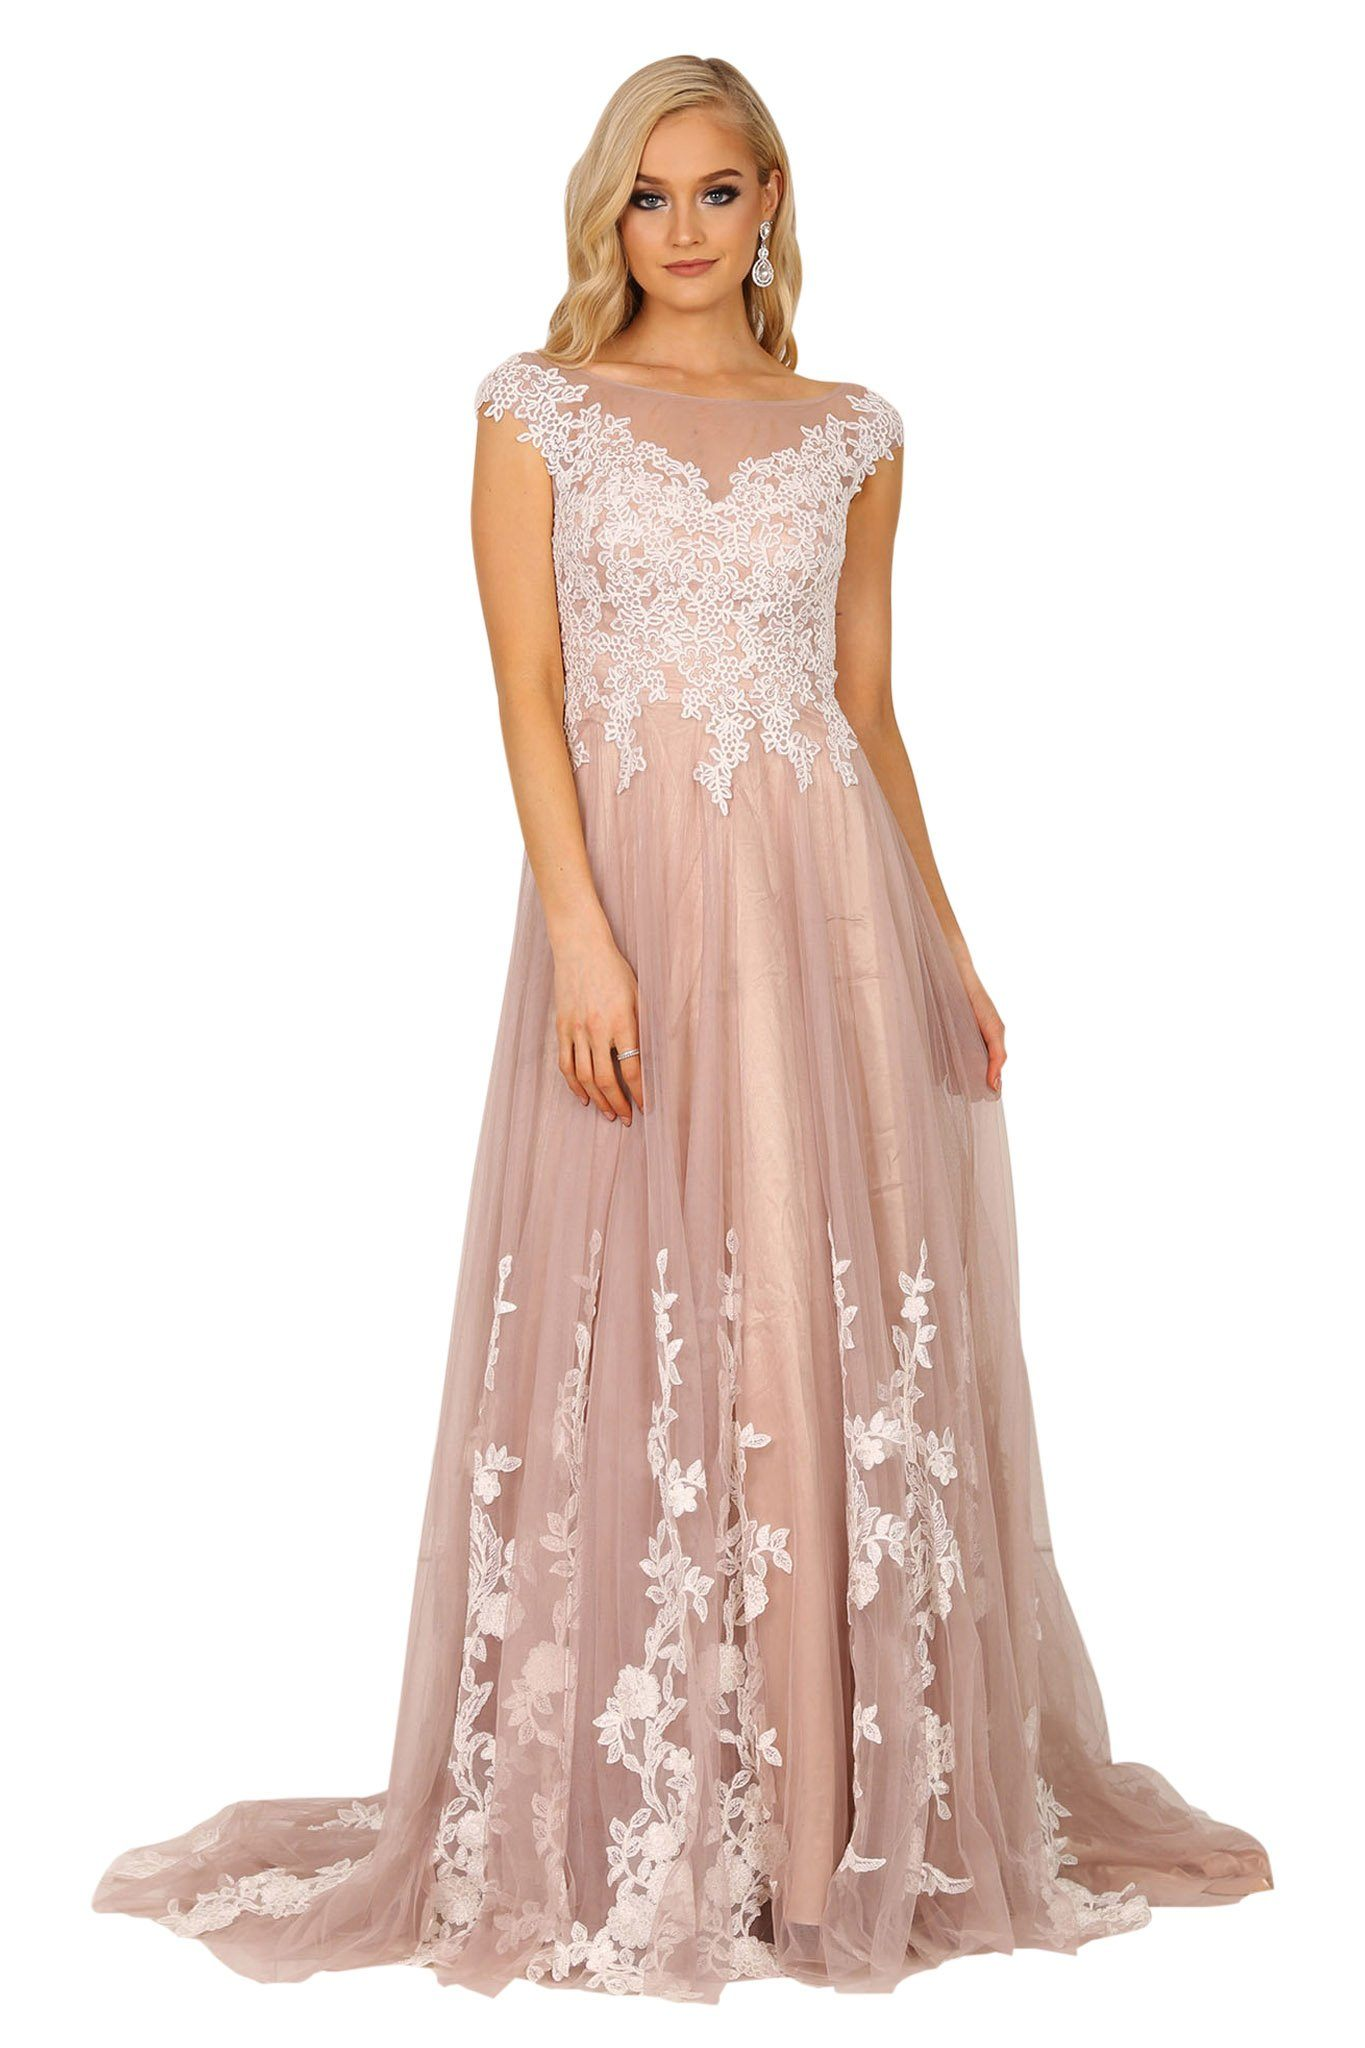 Light brown coloured evening gown features A-line layered tulle skirt, white floral lace applique over beige/light brown mesh, see through back and sweep train